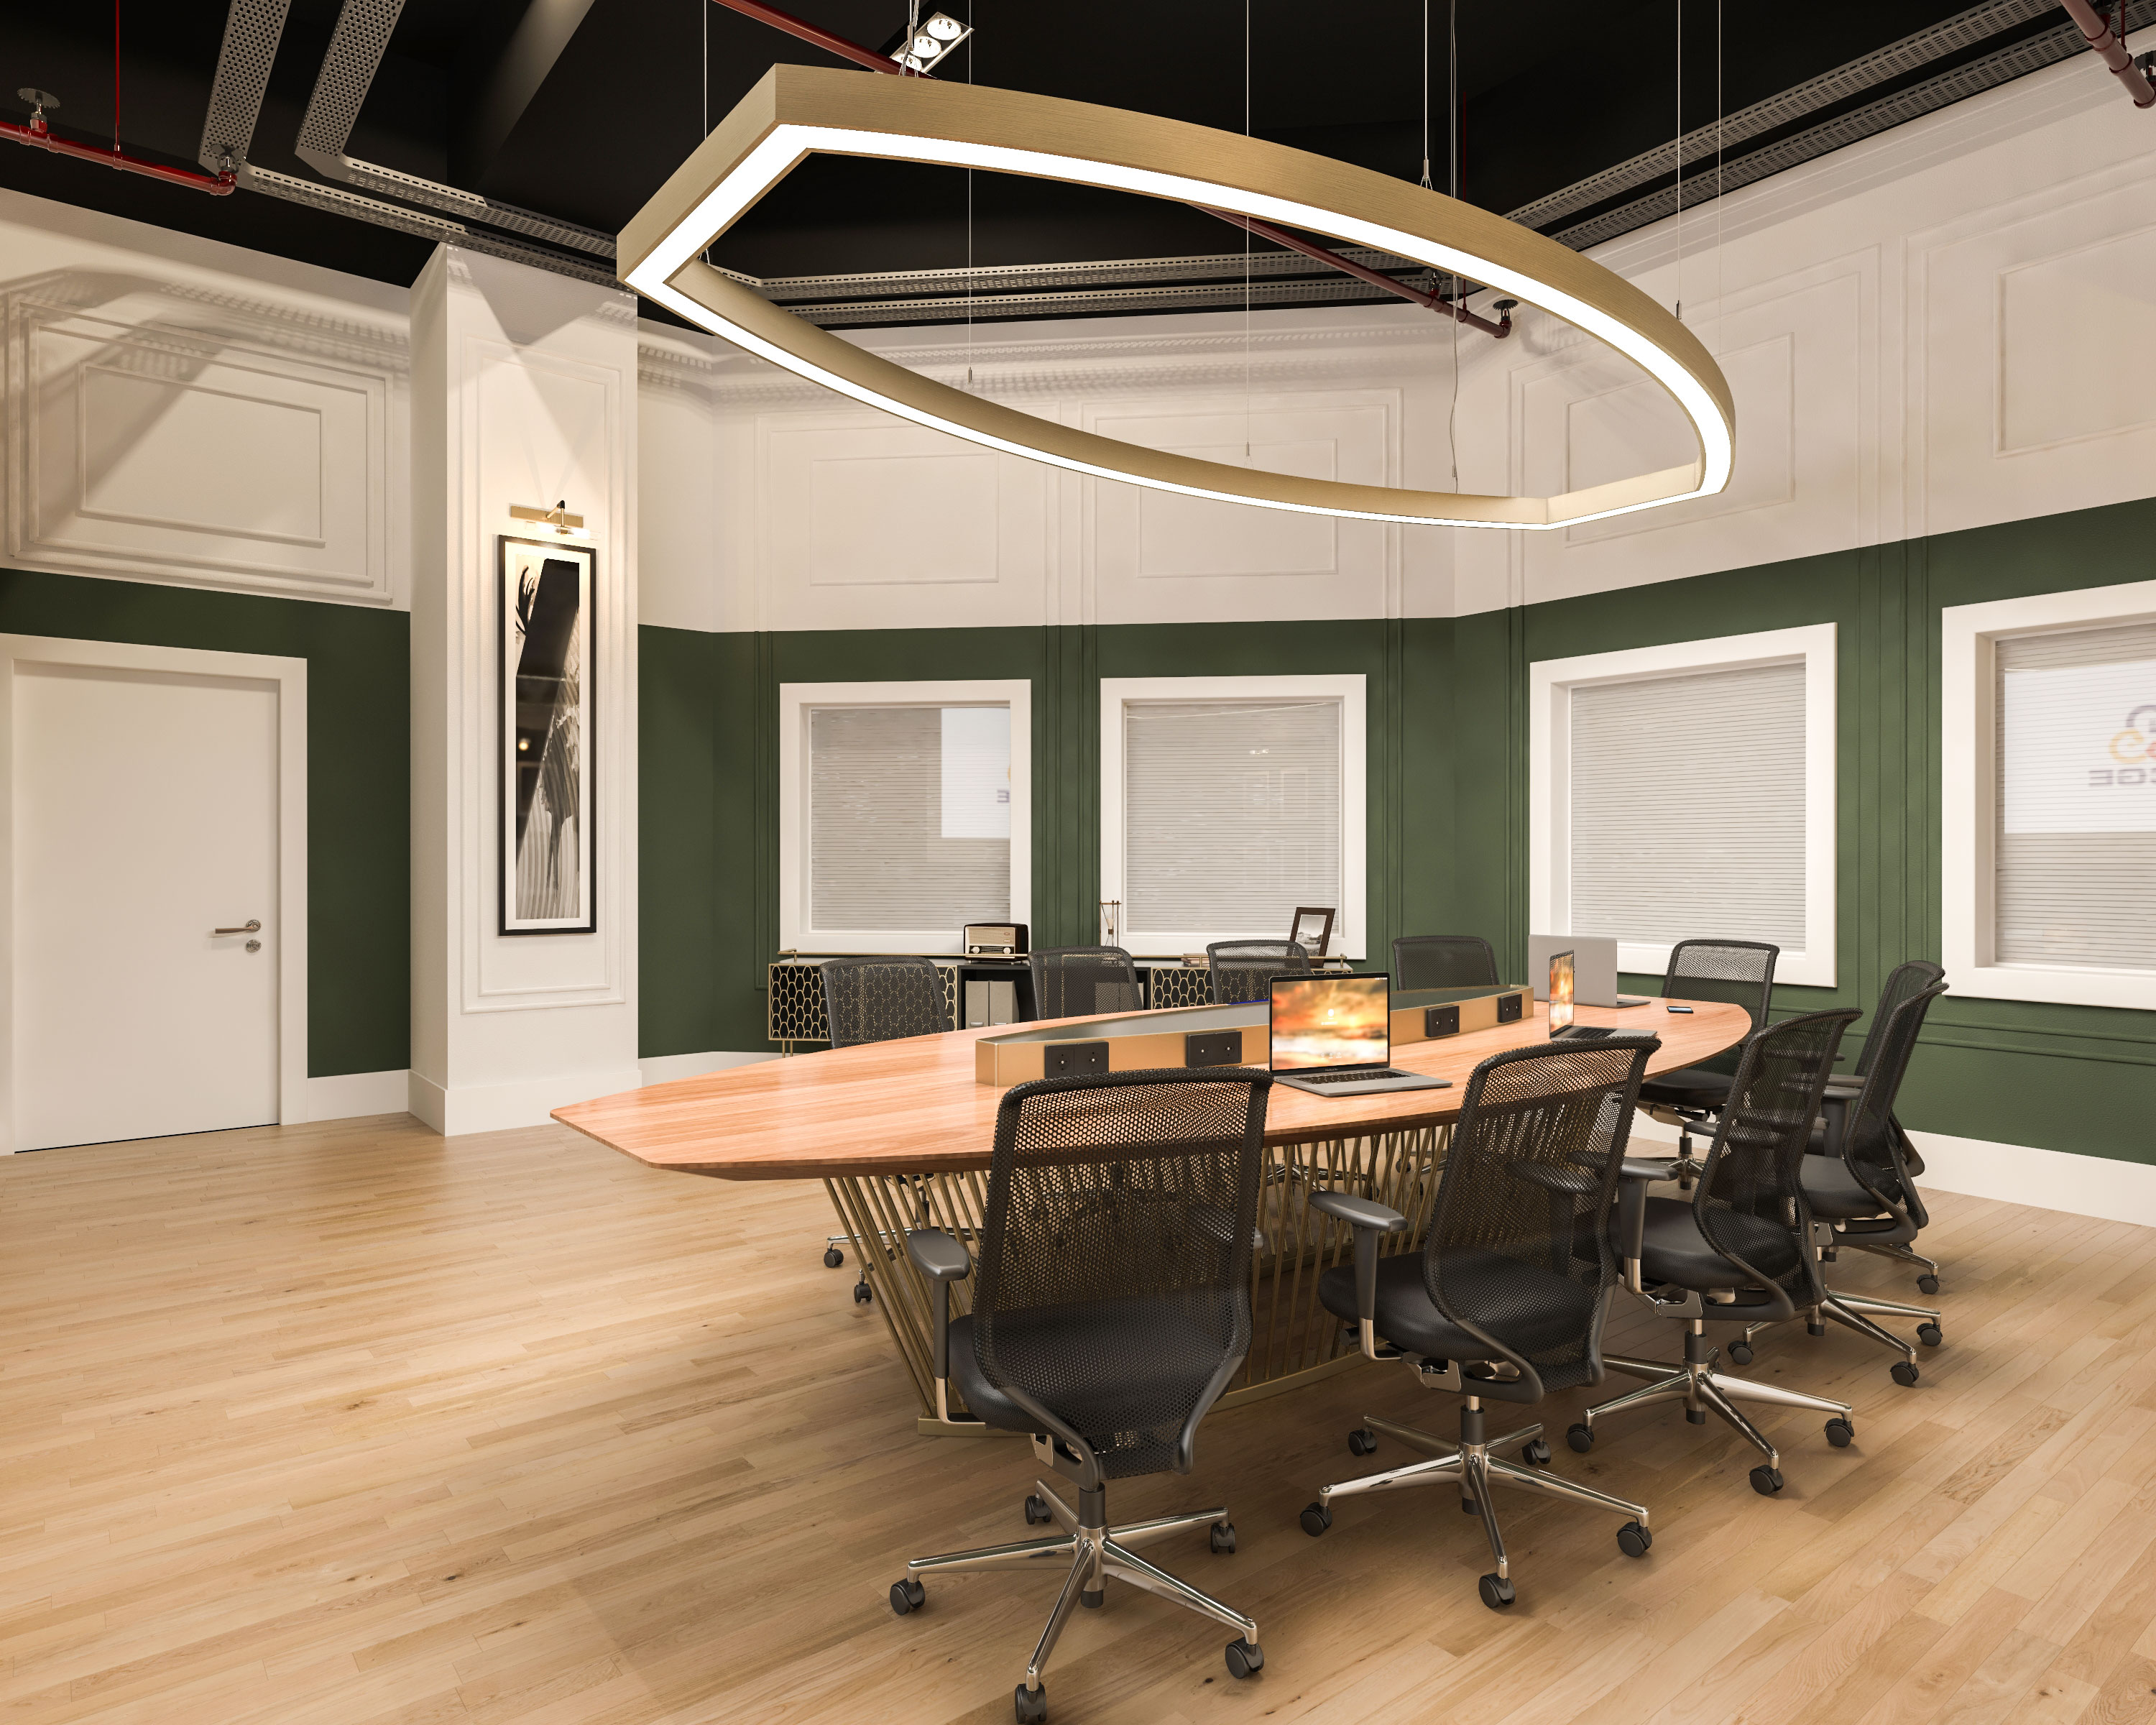 meeting_room_interior_design_executive_room_green_interiors_4